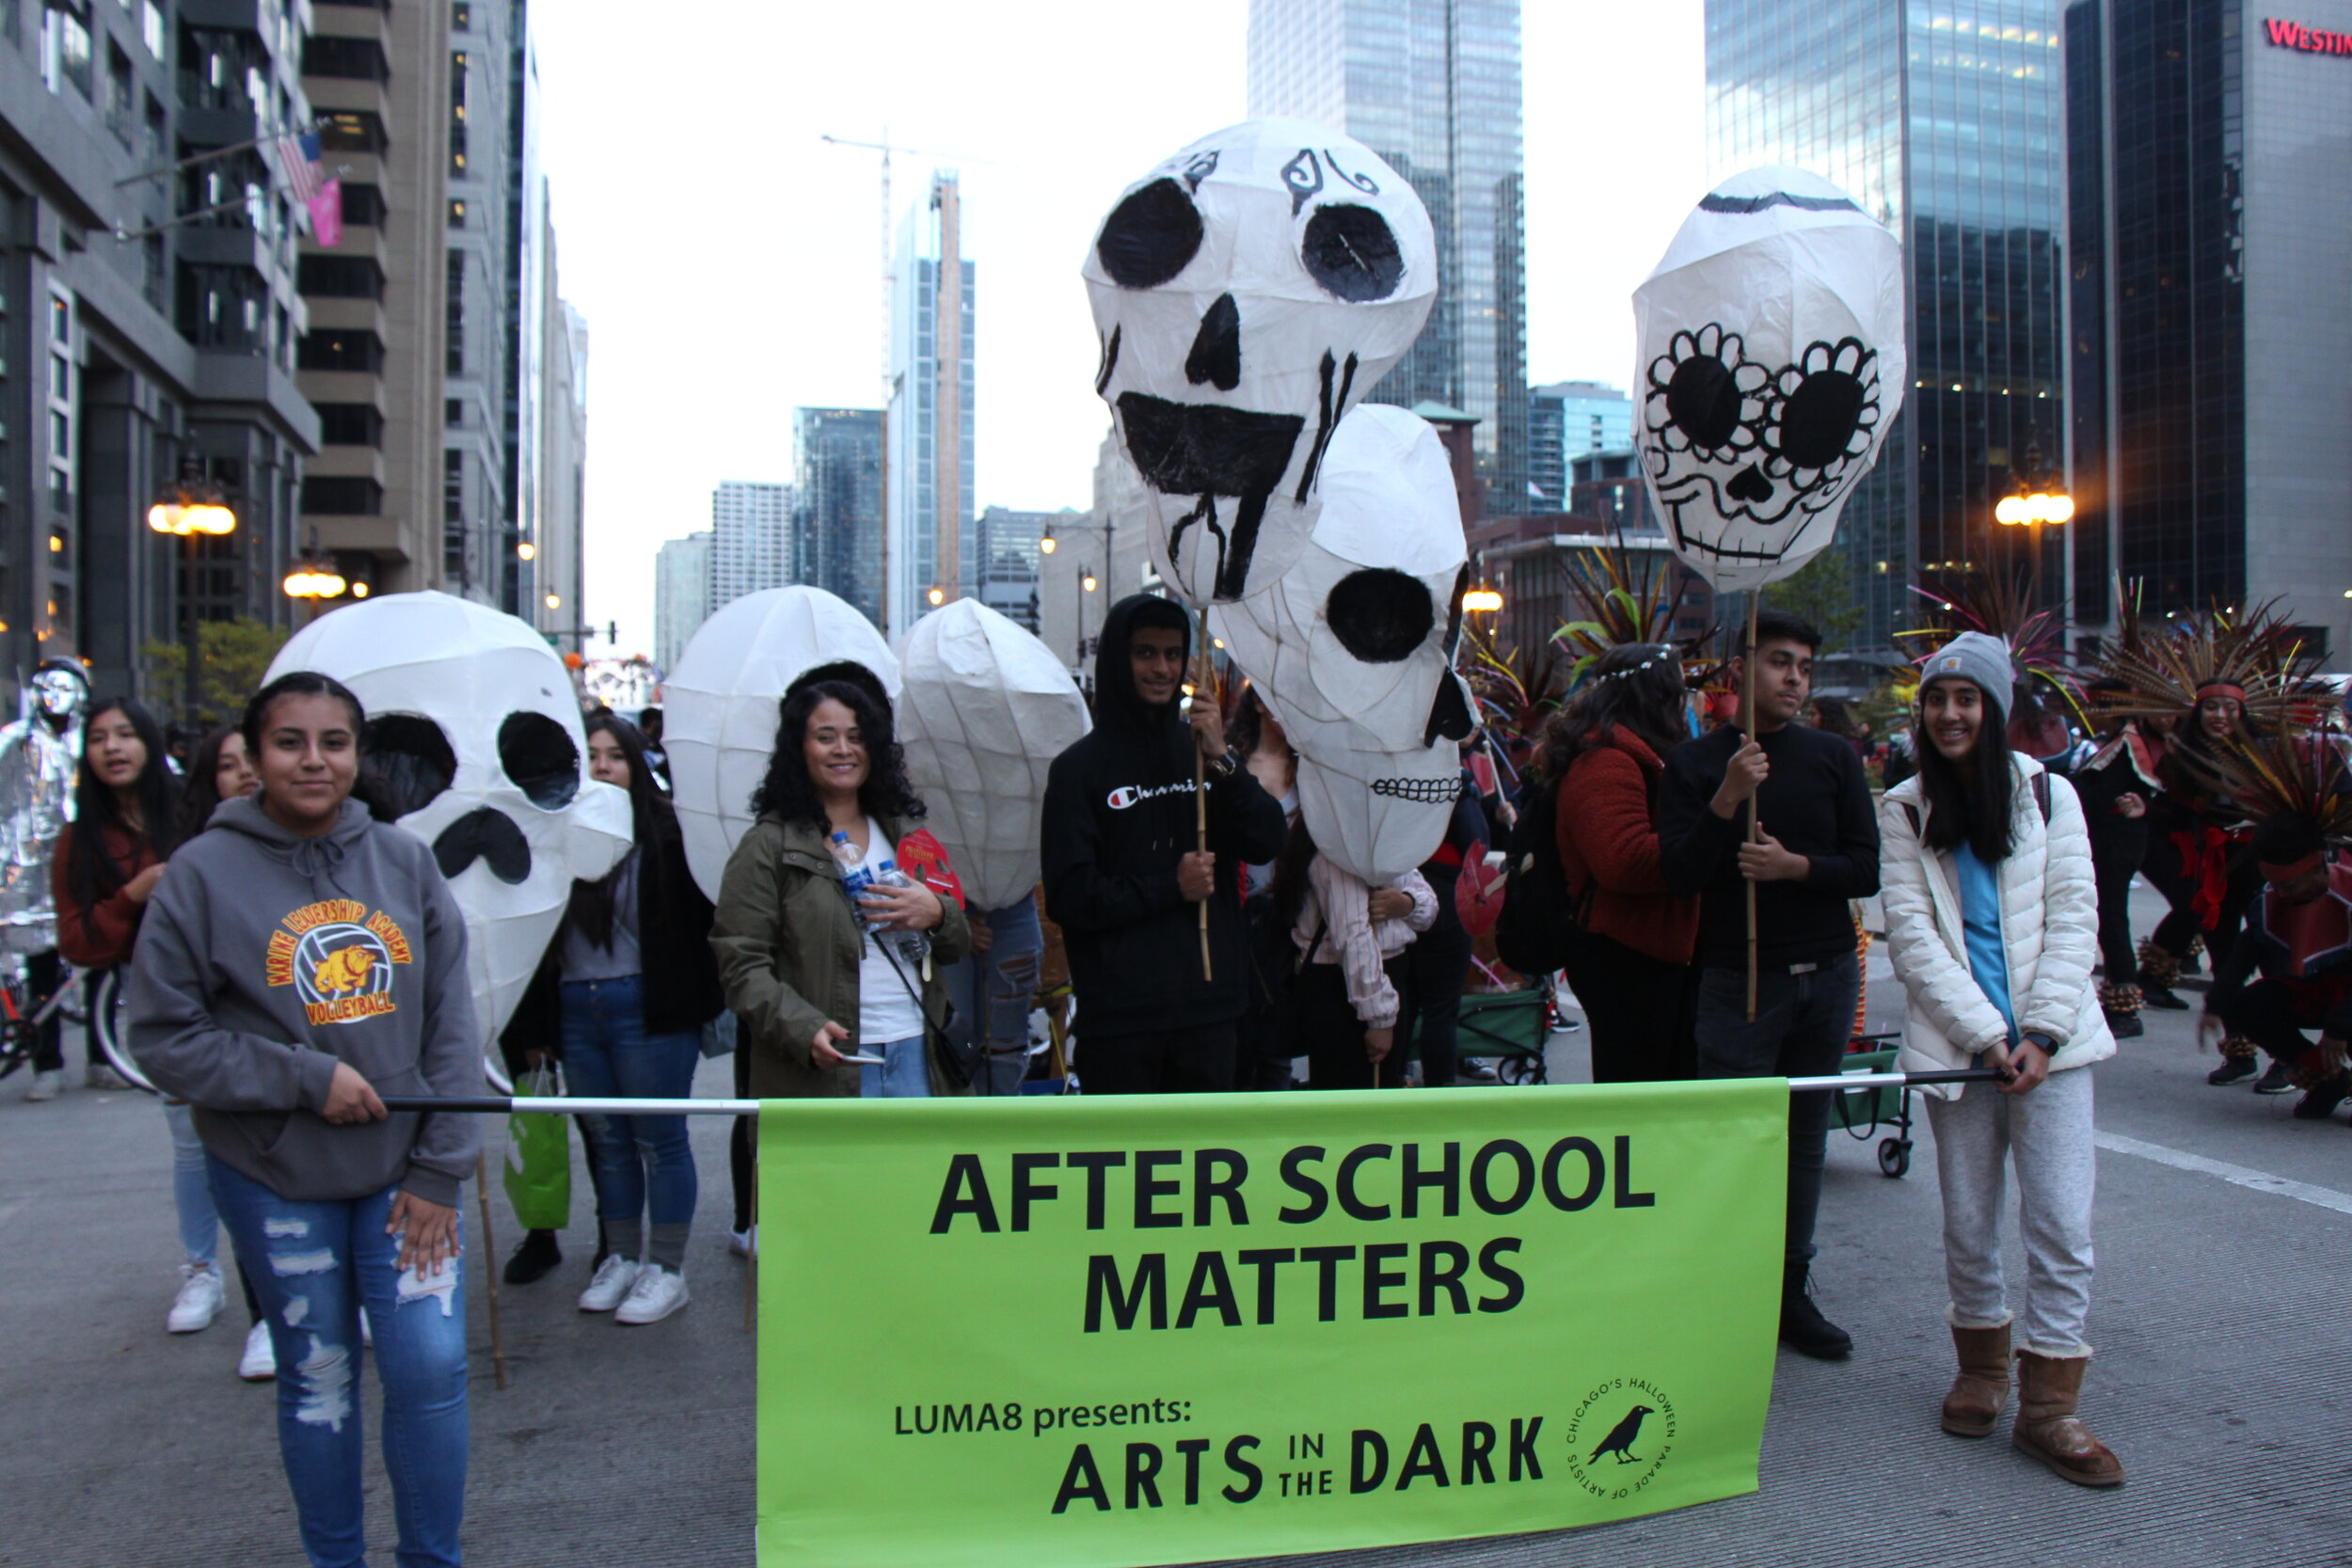 After School Matters getting ready for their third year of the Art in the Dark parade